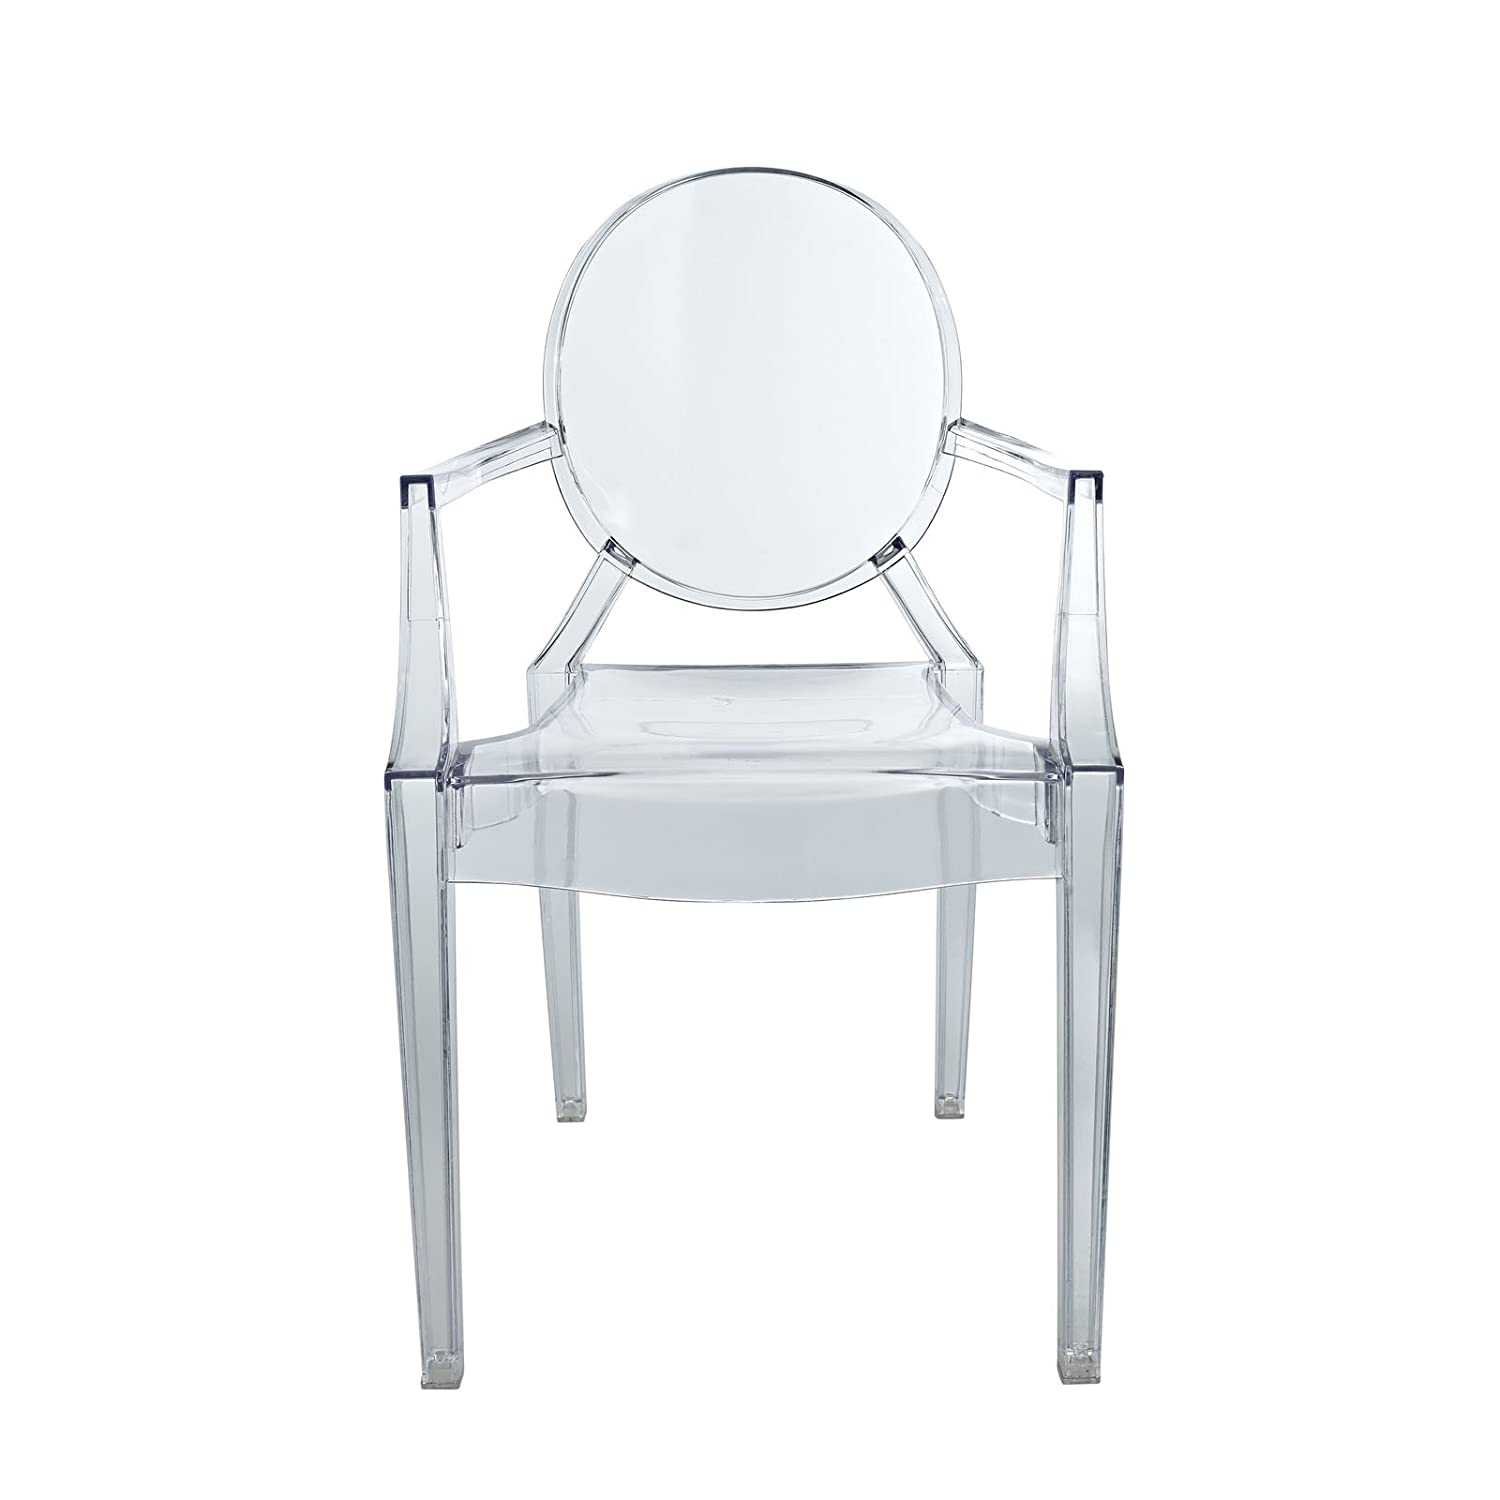 Amazon Modway Casper Kids Chair in Clear Kitchen & Dining